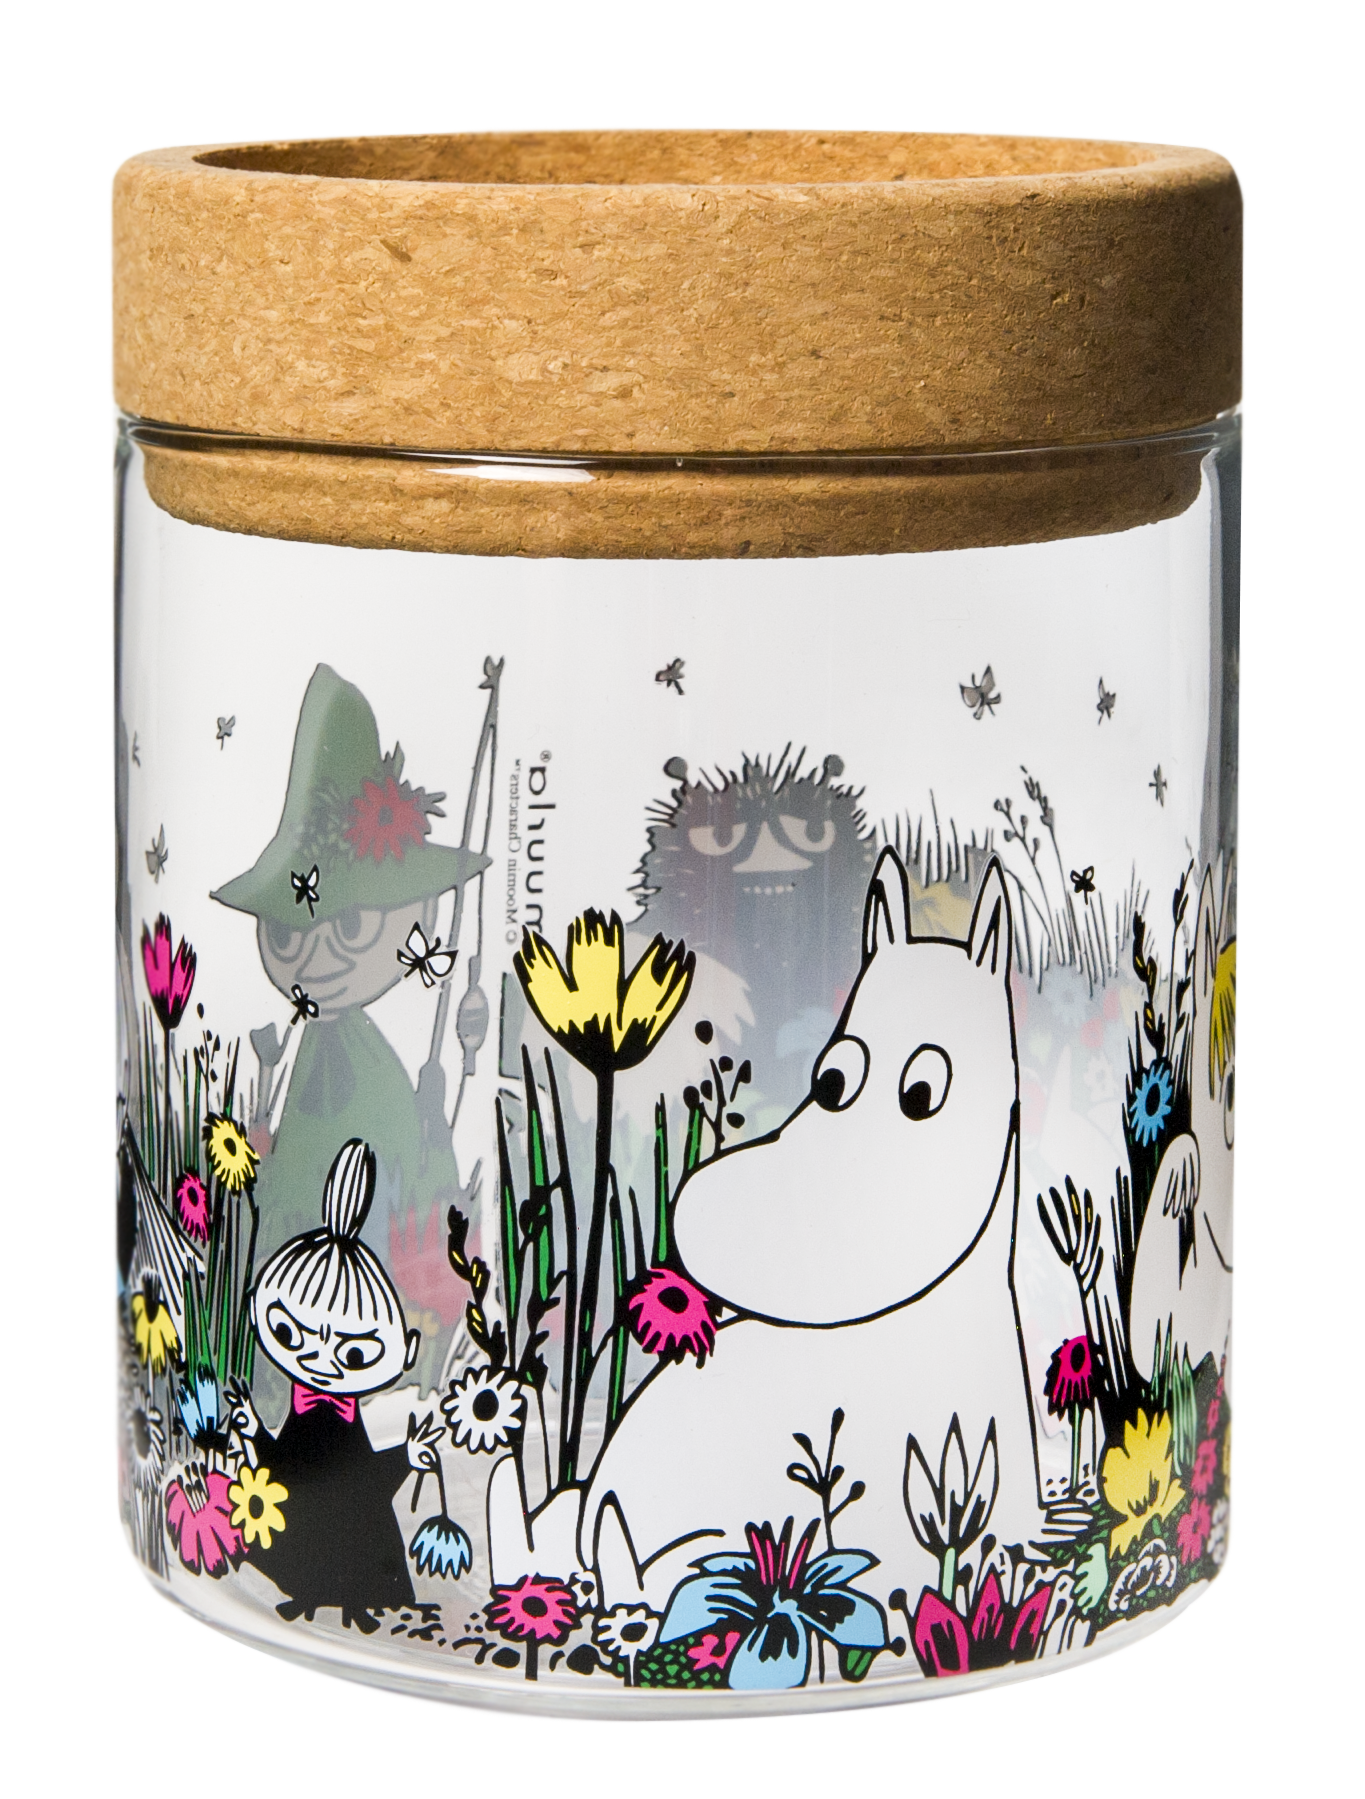 Muurla lantern/jar with cork stand/lid, Moomin Shared Moment